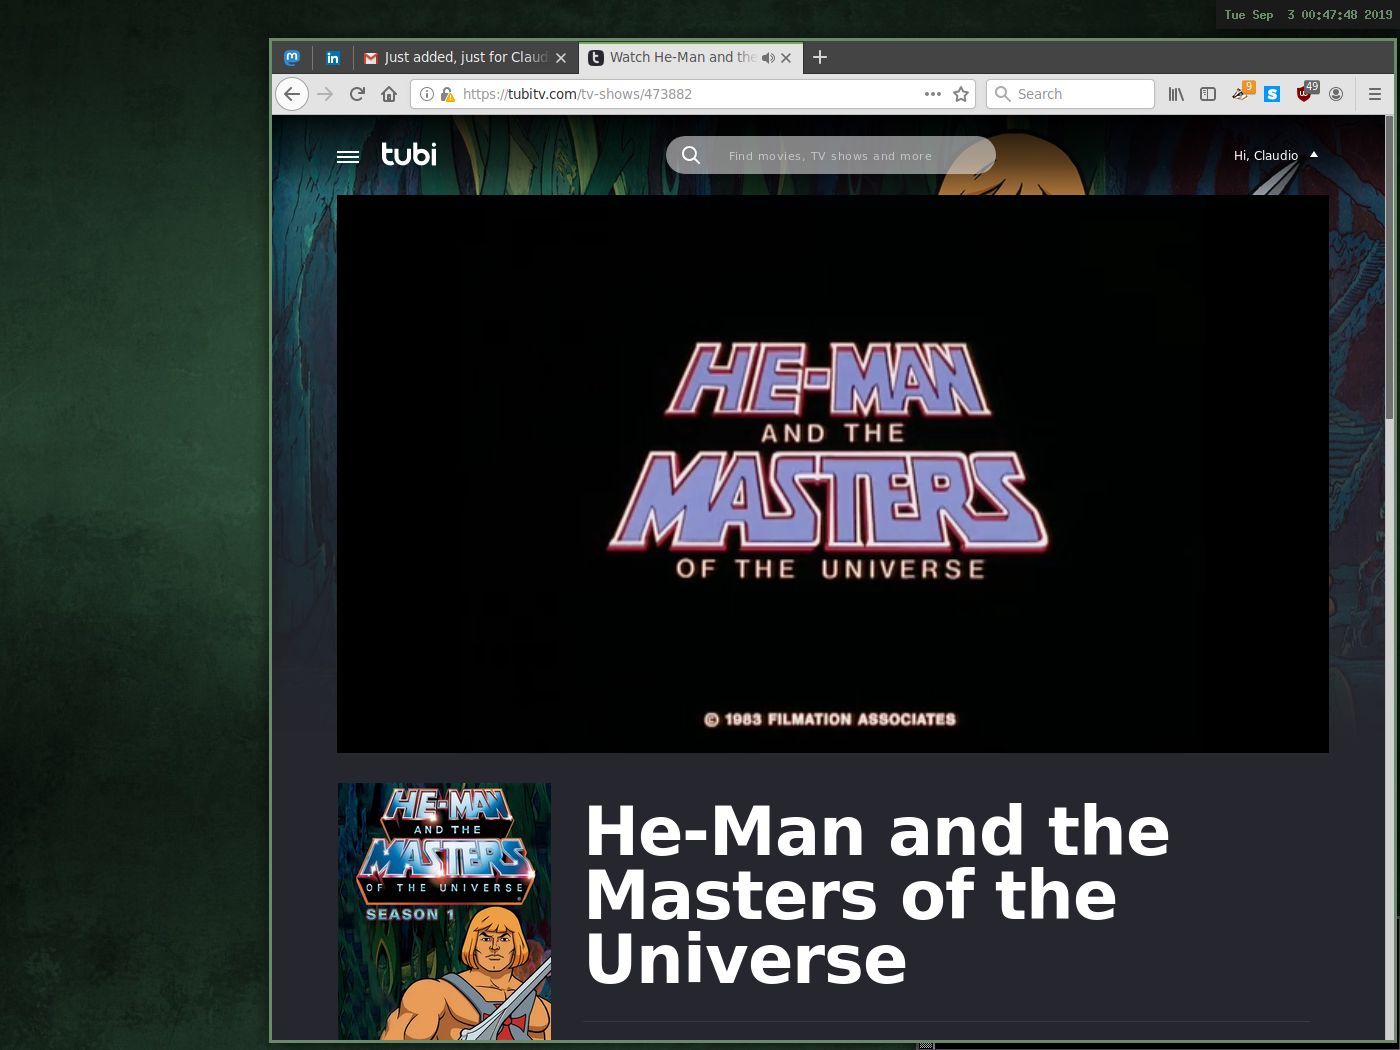 Cwm on OpenBSD with Firefox on TubiTV. He-Man and the Masters of the Universe is playing without issue. The title screen is showing in the video window.